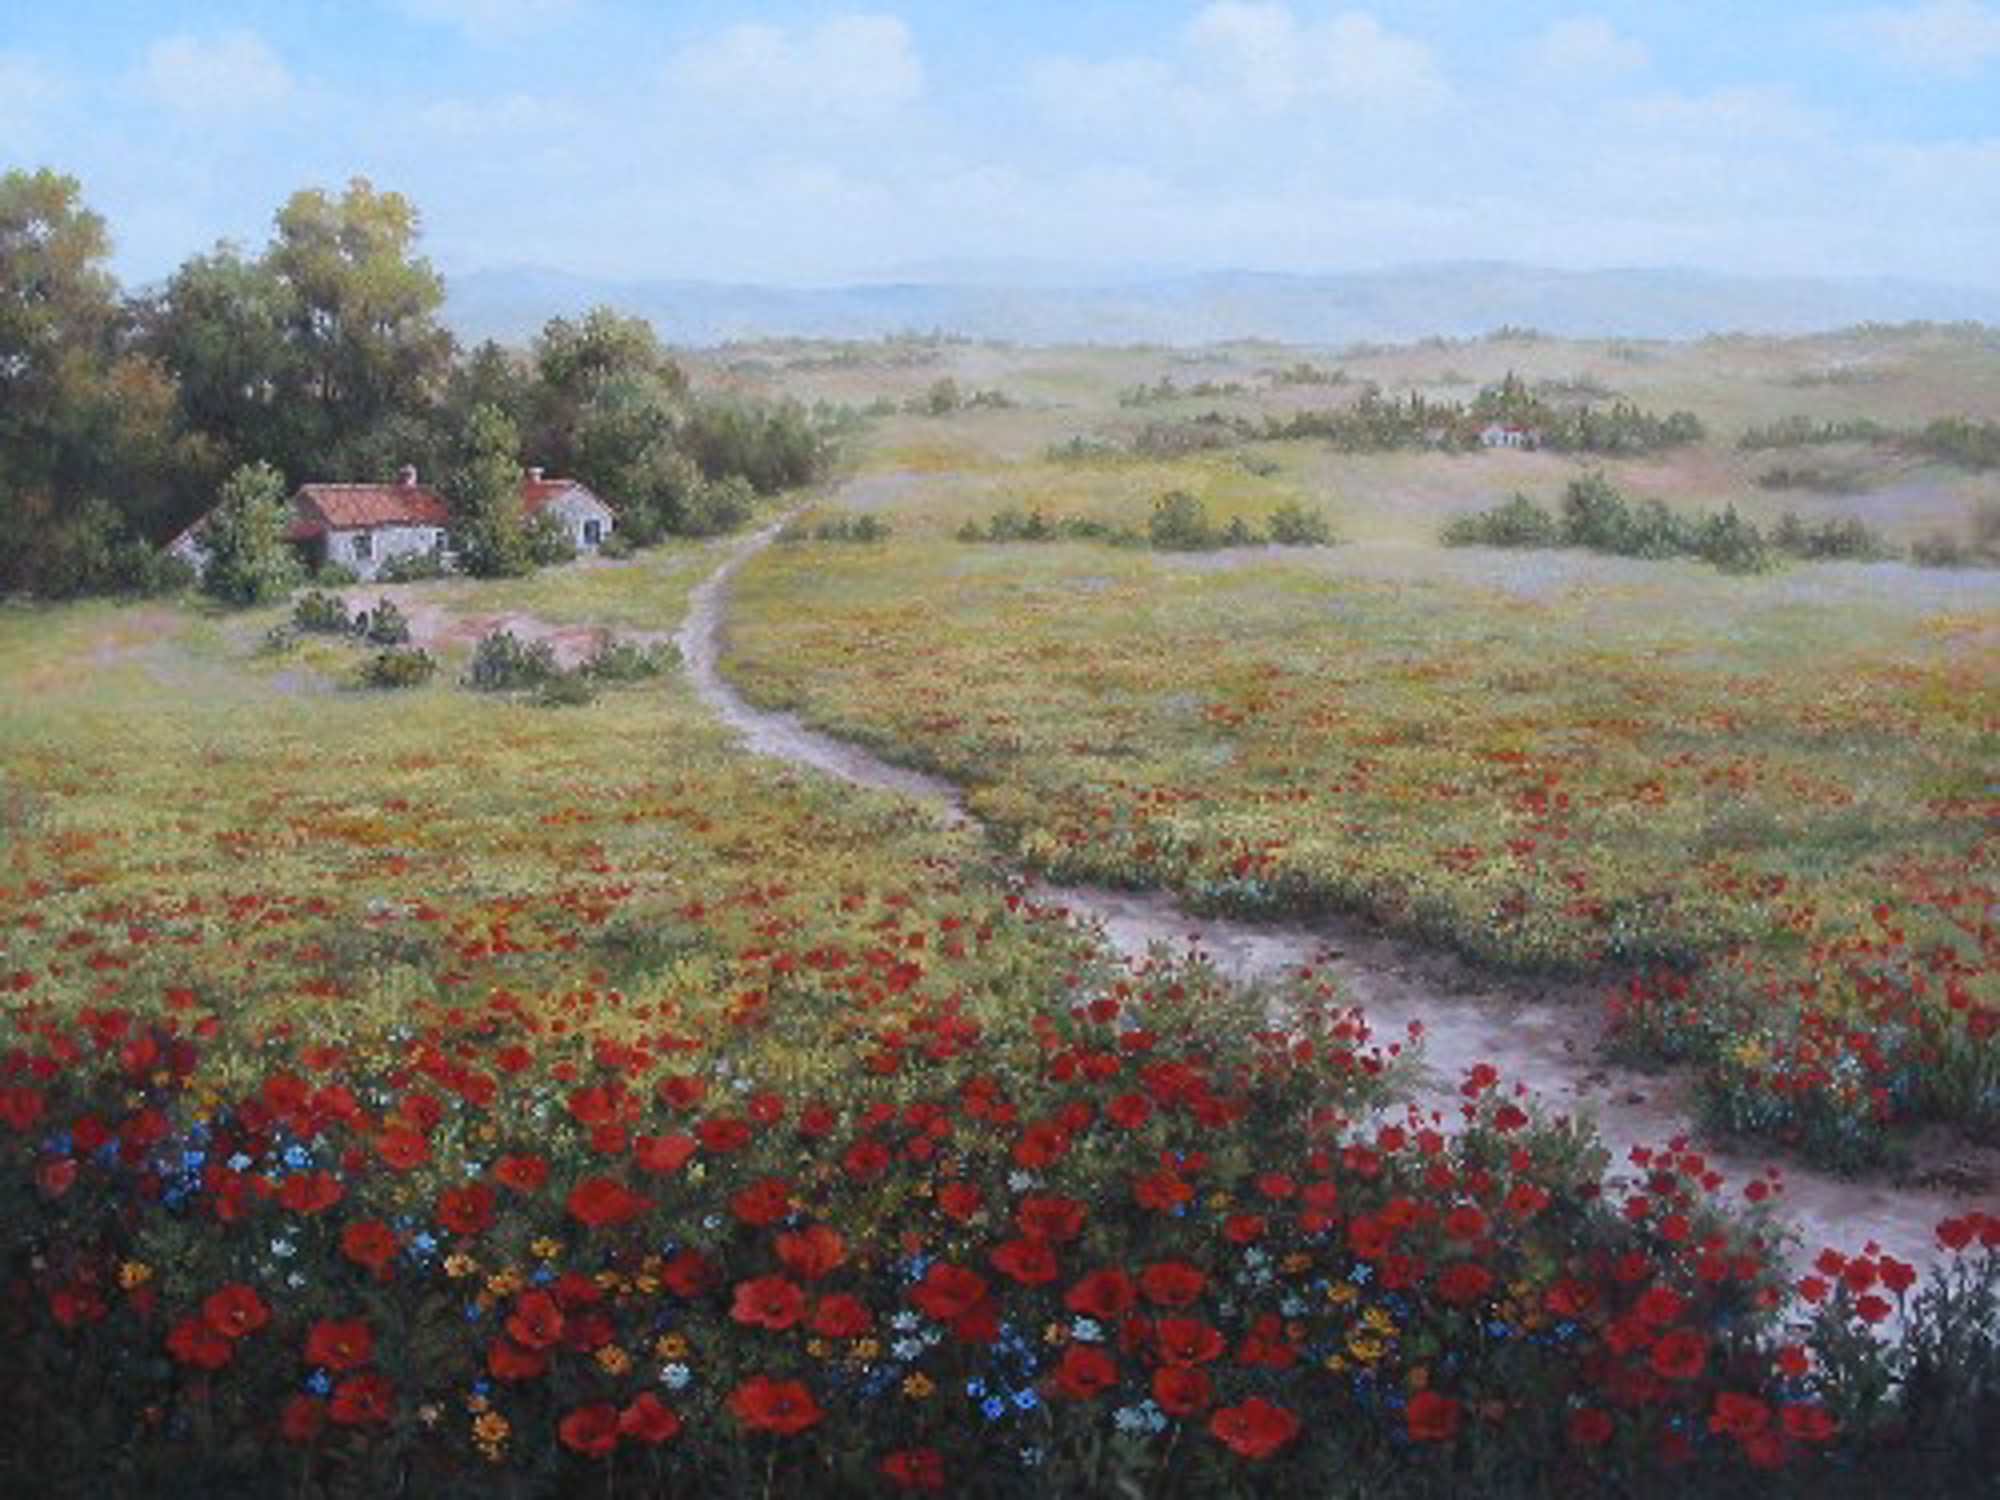 PASSAGE TO TUSCANY by M.S. PARK